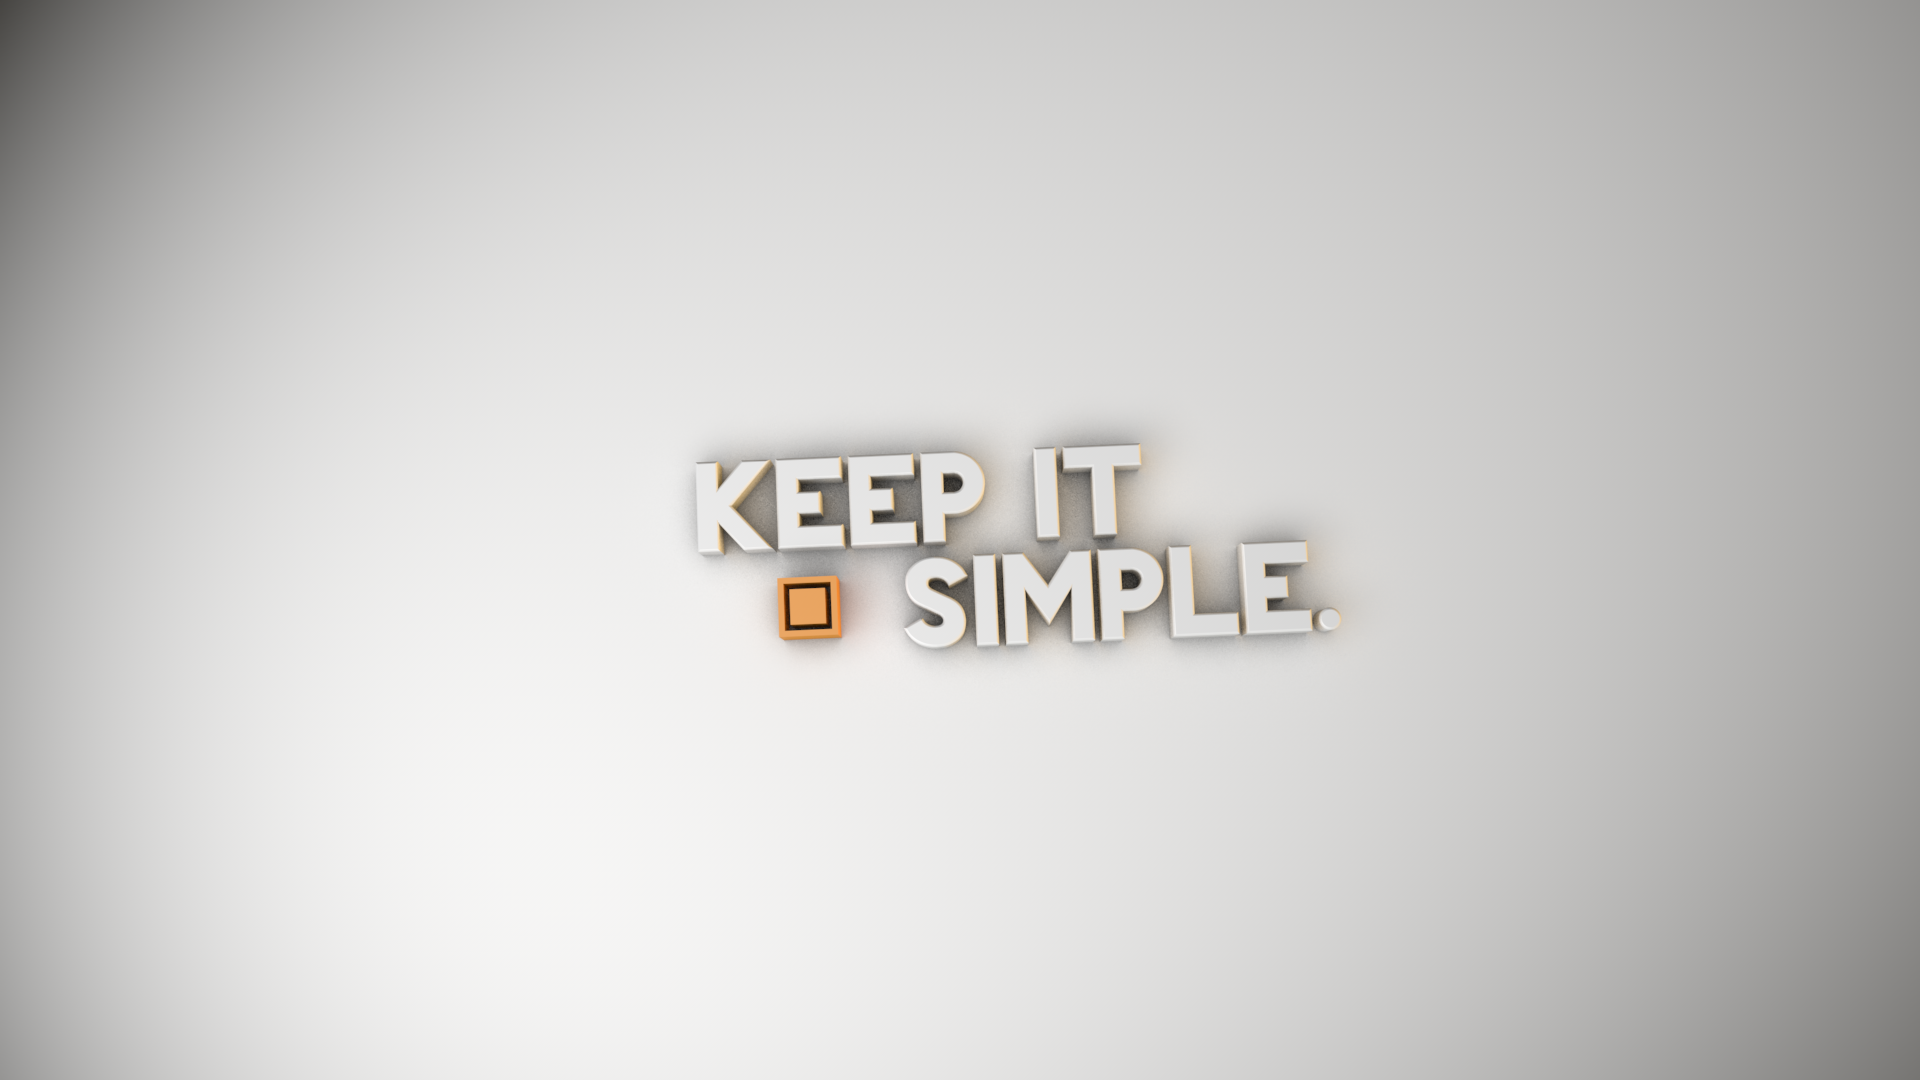 Wallpapers Of The Day: Simplicity | 1920x1080 px Simplicity Backgrounds